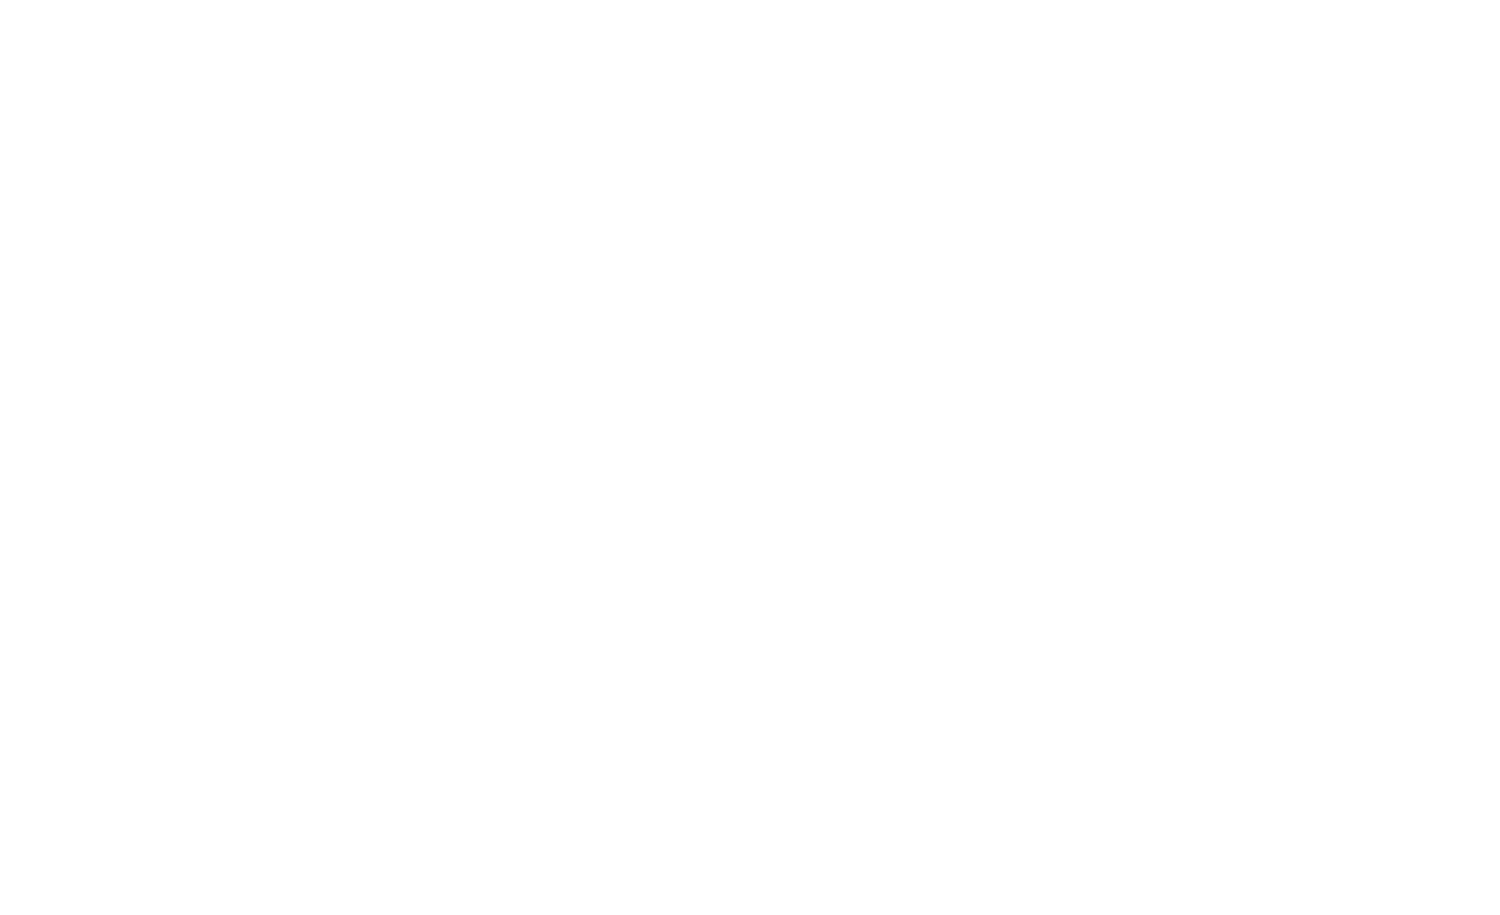 GGI BROKERAGE